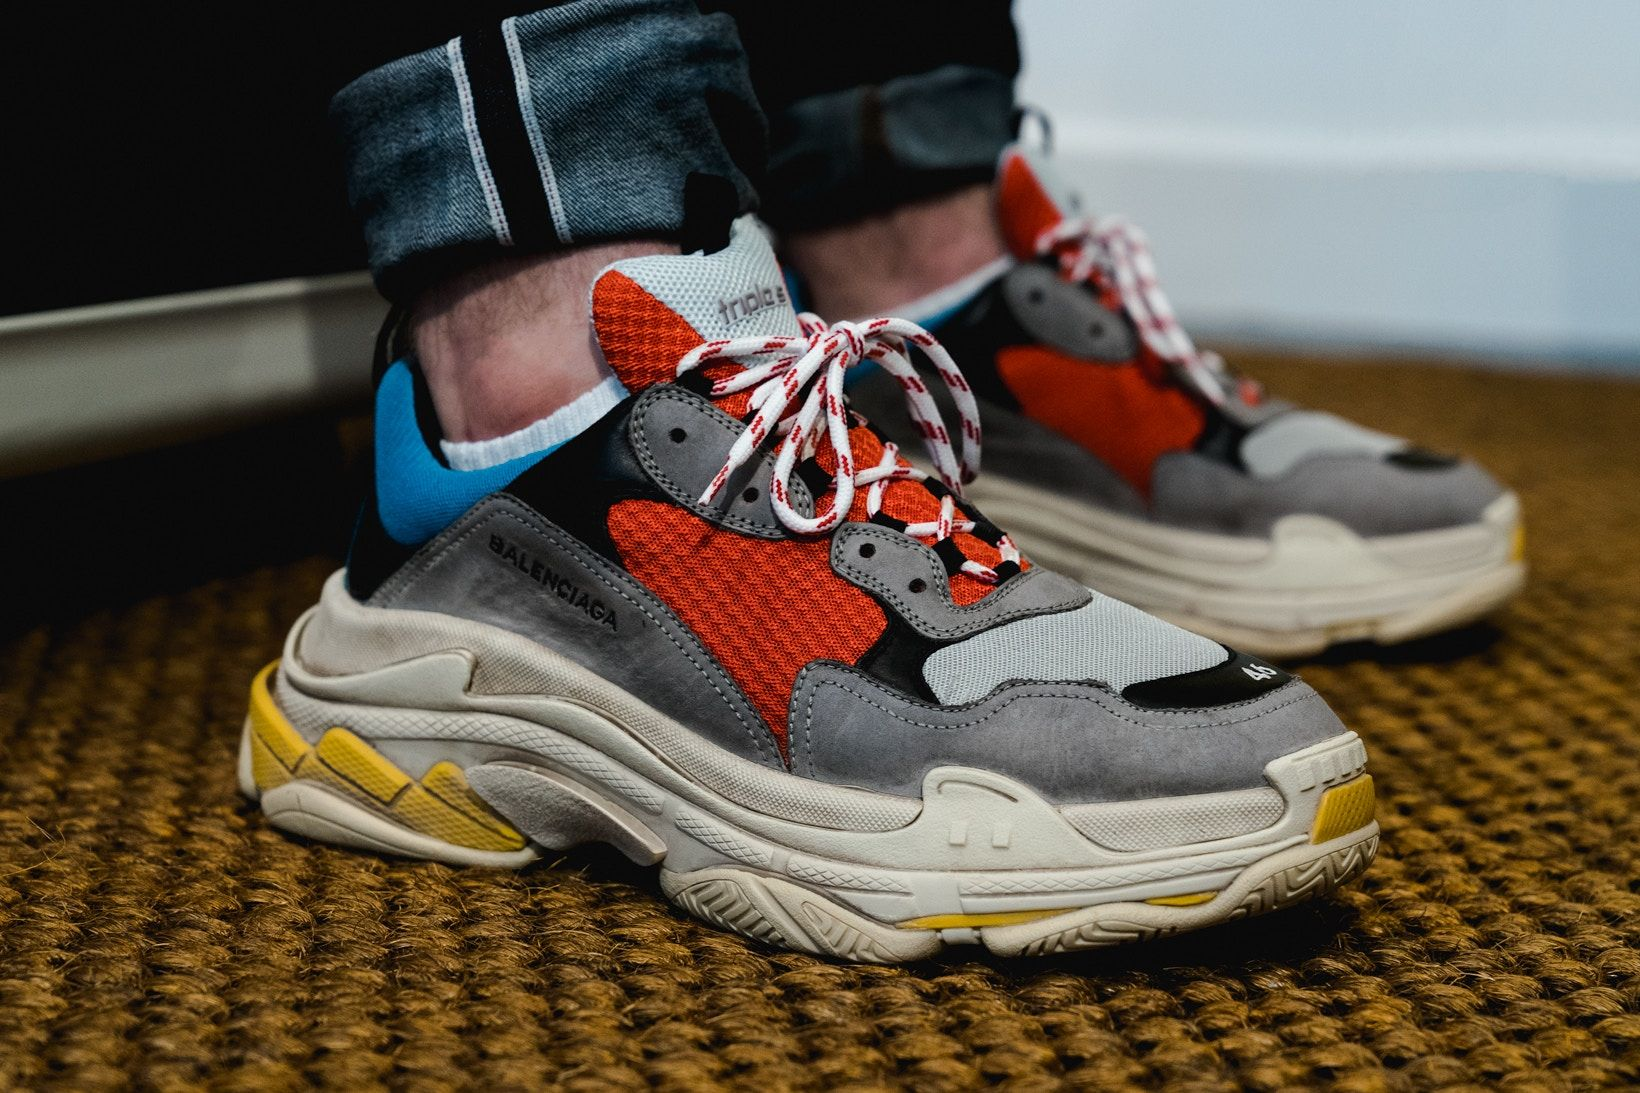 d6337076748 Here s a Closer Look at Balenciaga s Hard-To-Ignore Triple S Trainer ...